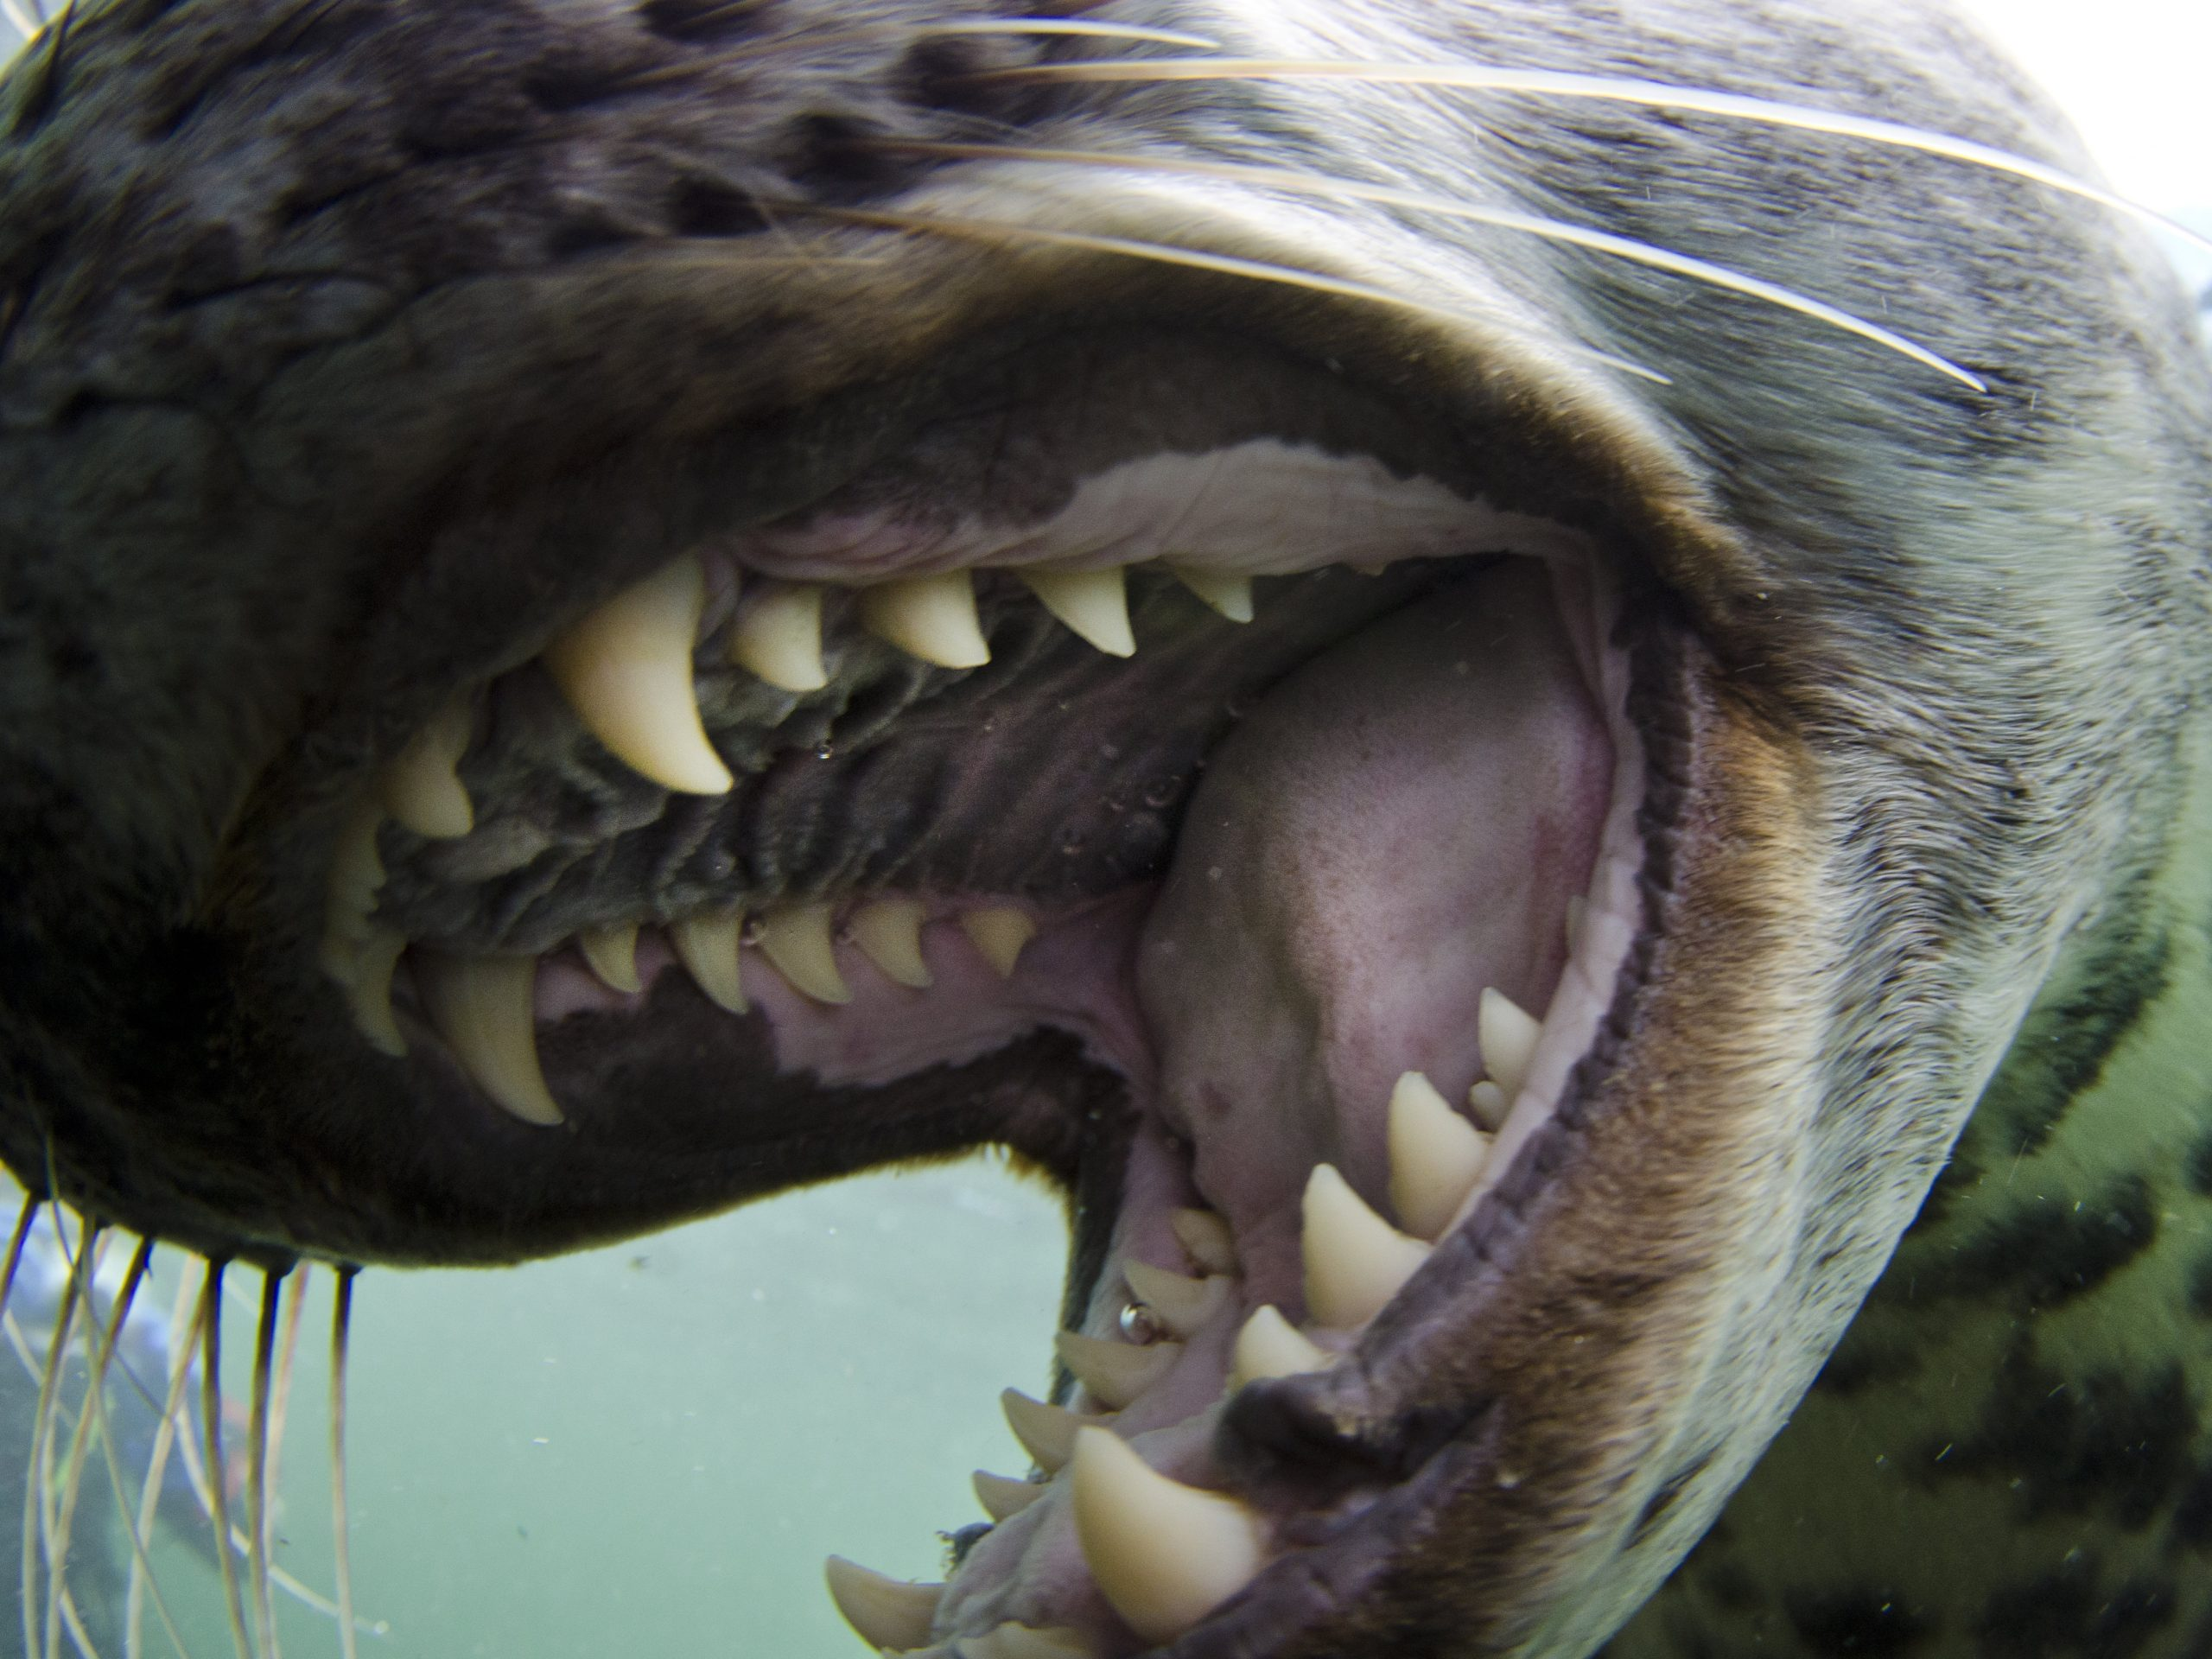 seal-mouth-open